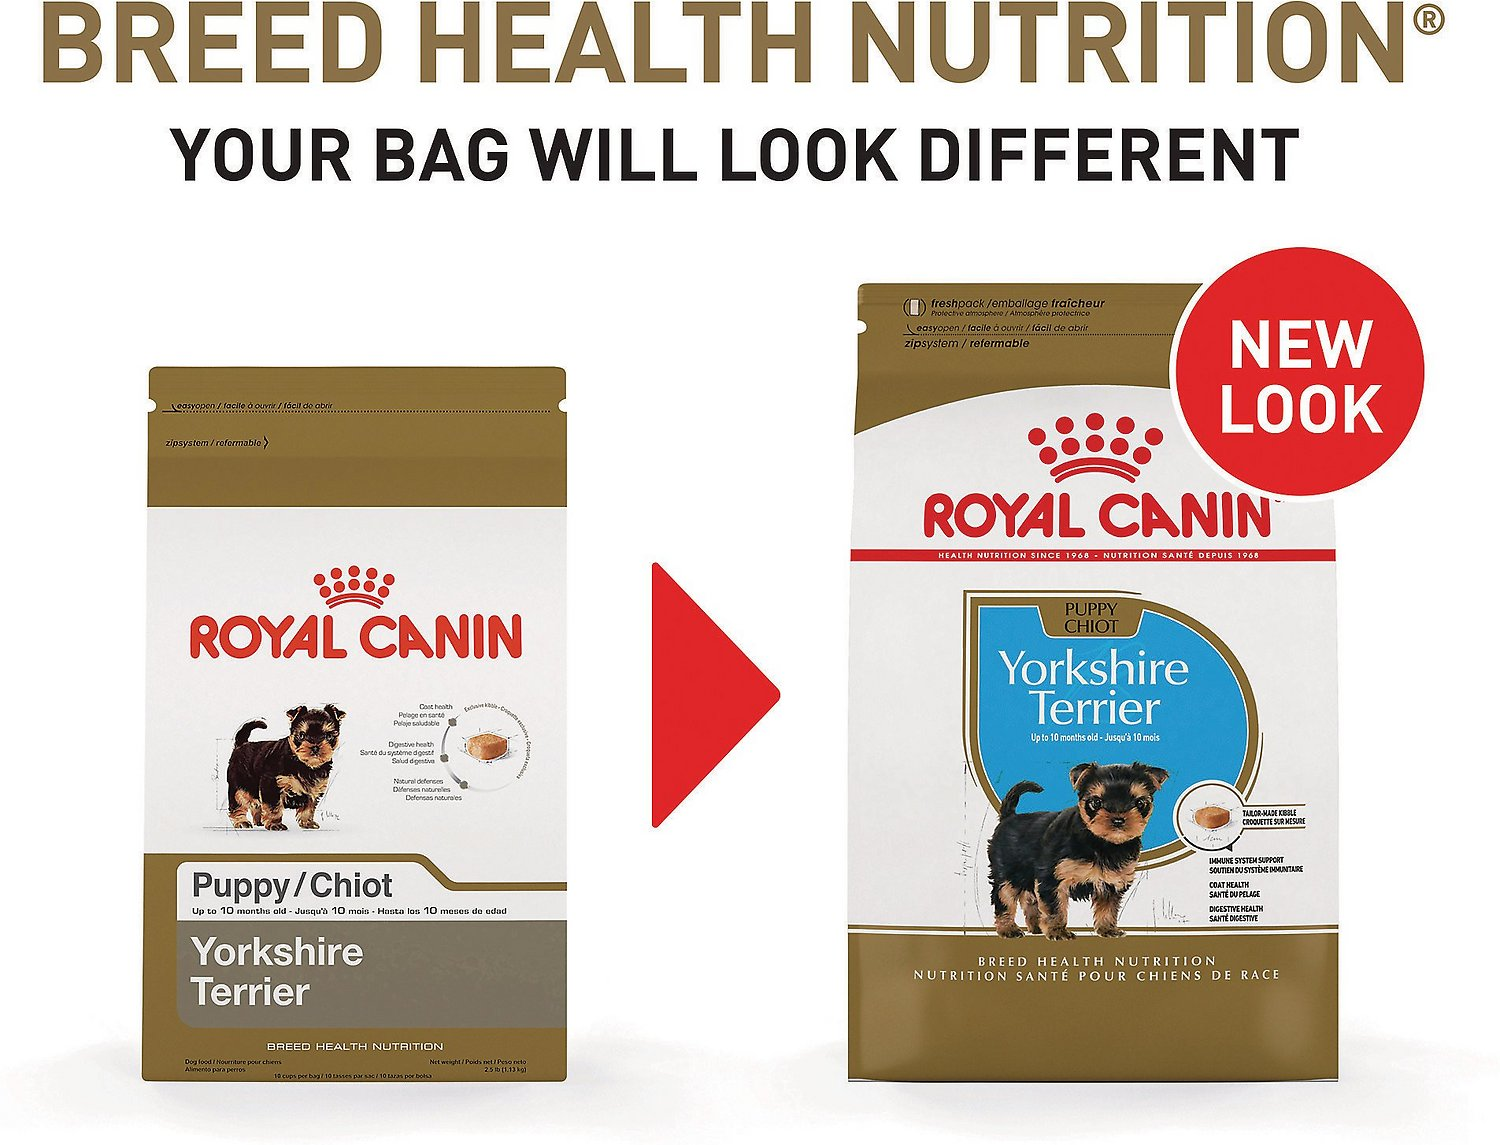 Royal canin yorkshire terrier puppy dry dog food 25 lb bag video nvjuhfo Choice Image